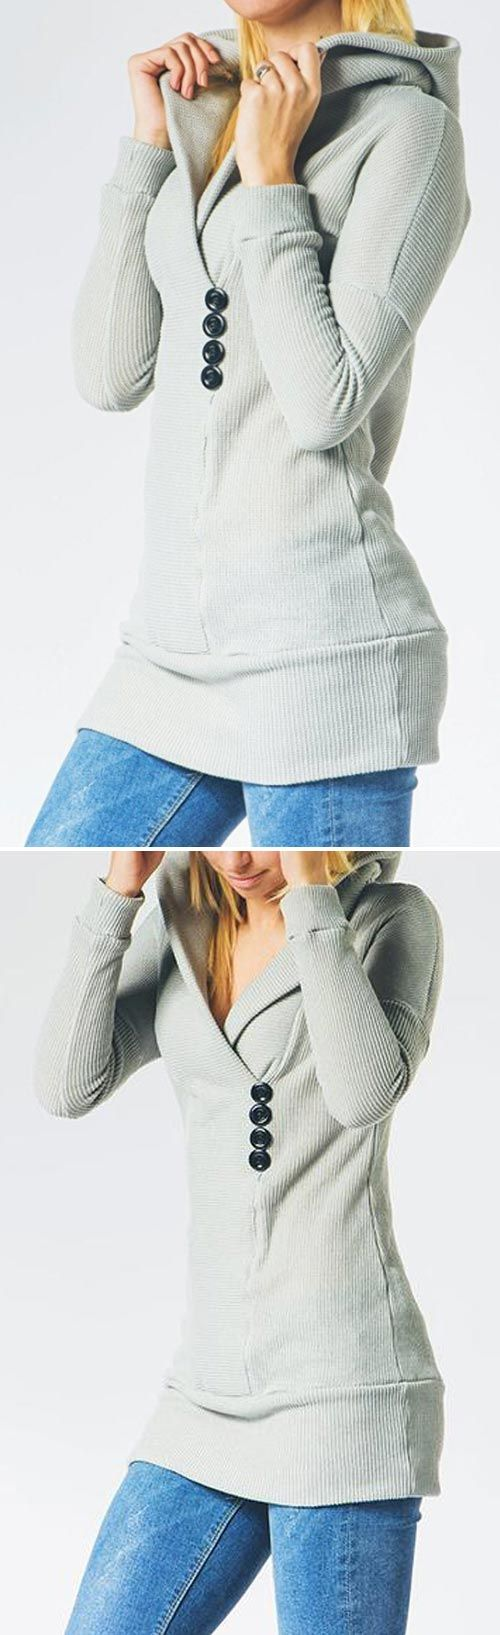 Hot Sale, Only $21.99! Free Shipping Now! Happily grey makes casual chic again. Hooded design keep you cute to hug cold weather. Do not miss it at Cupshe.com !